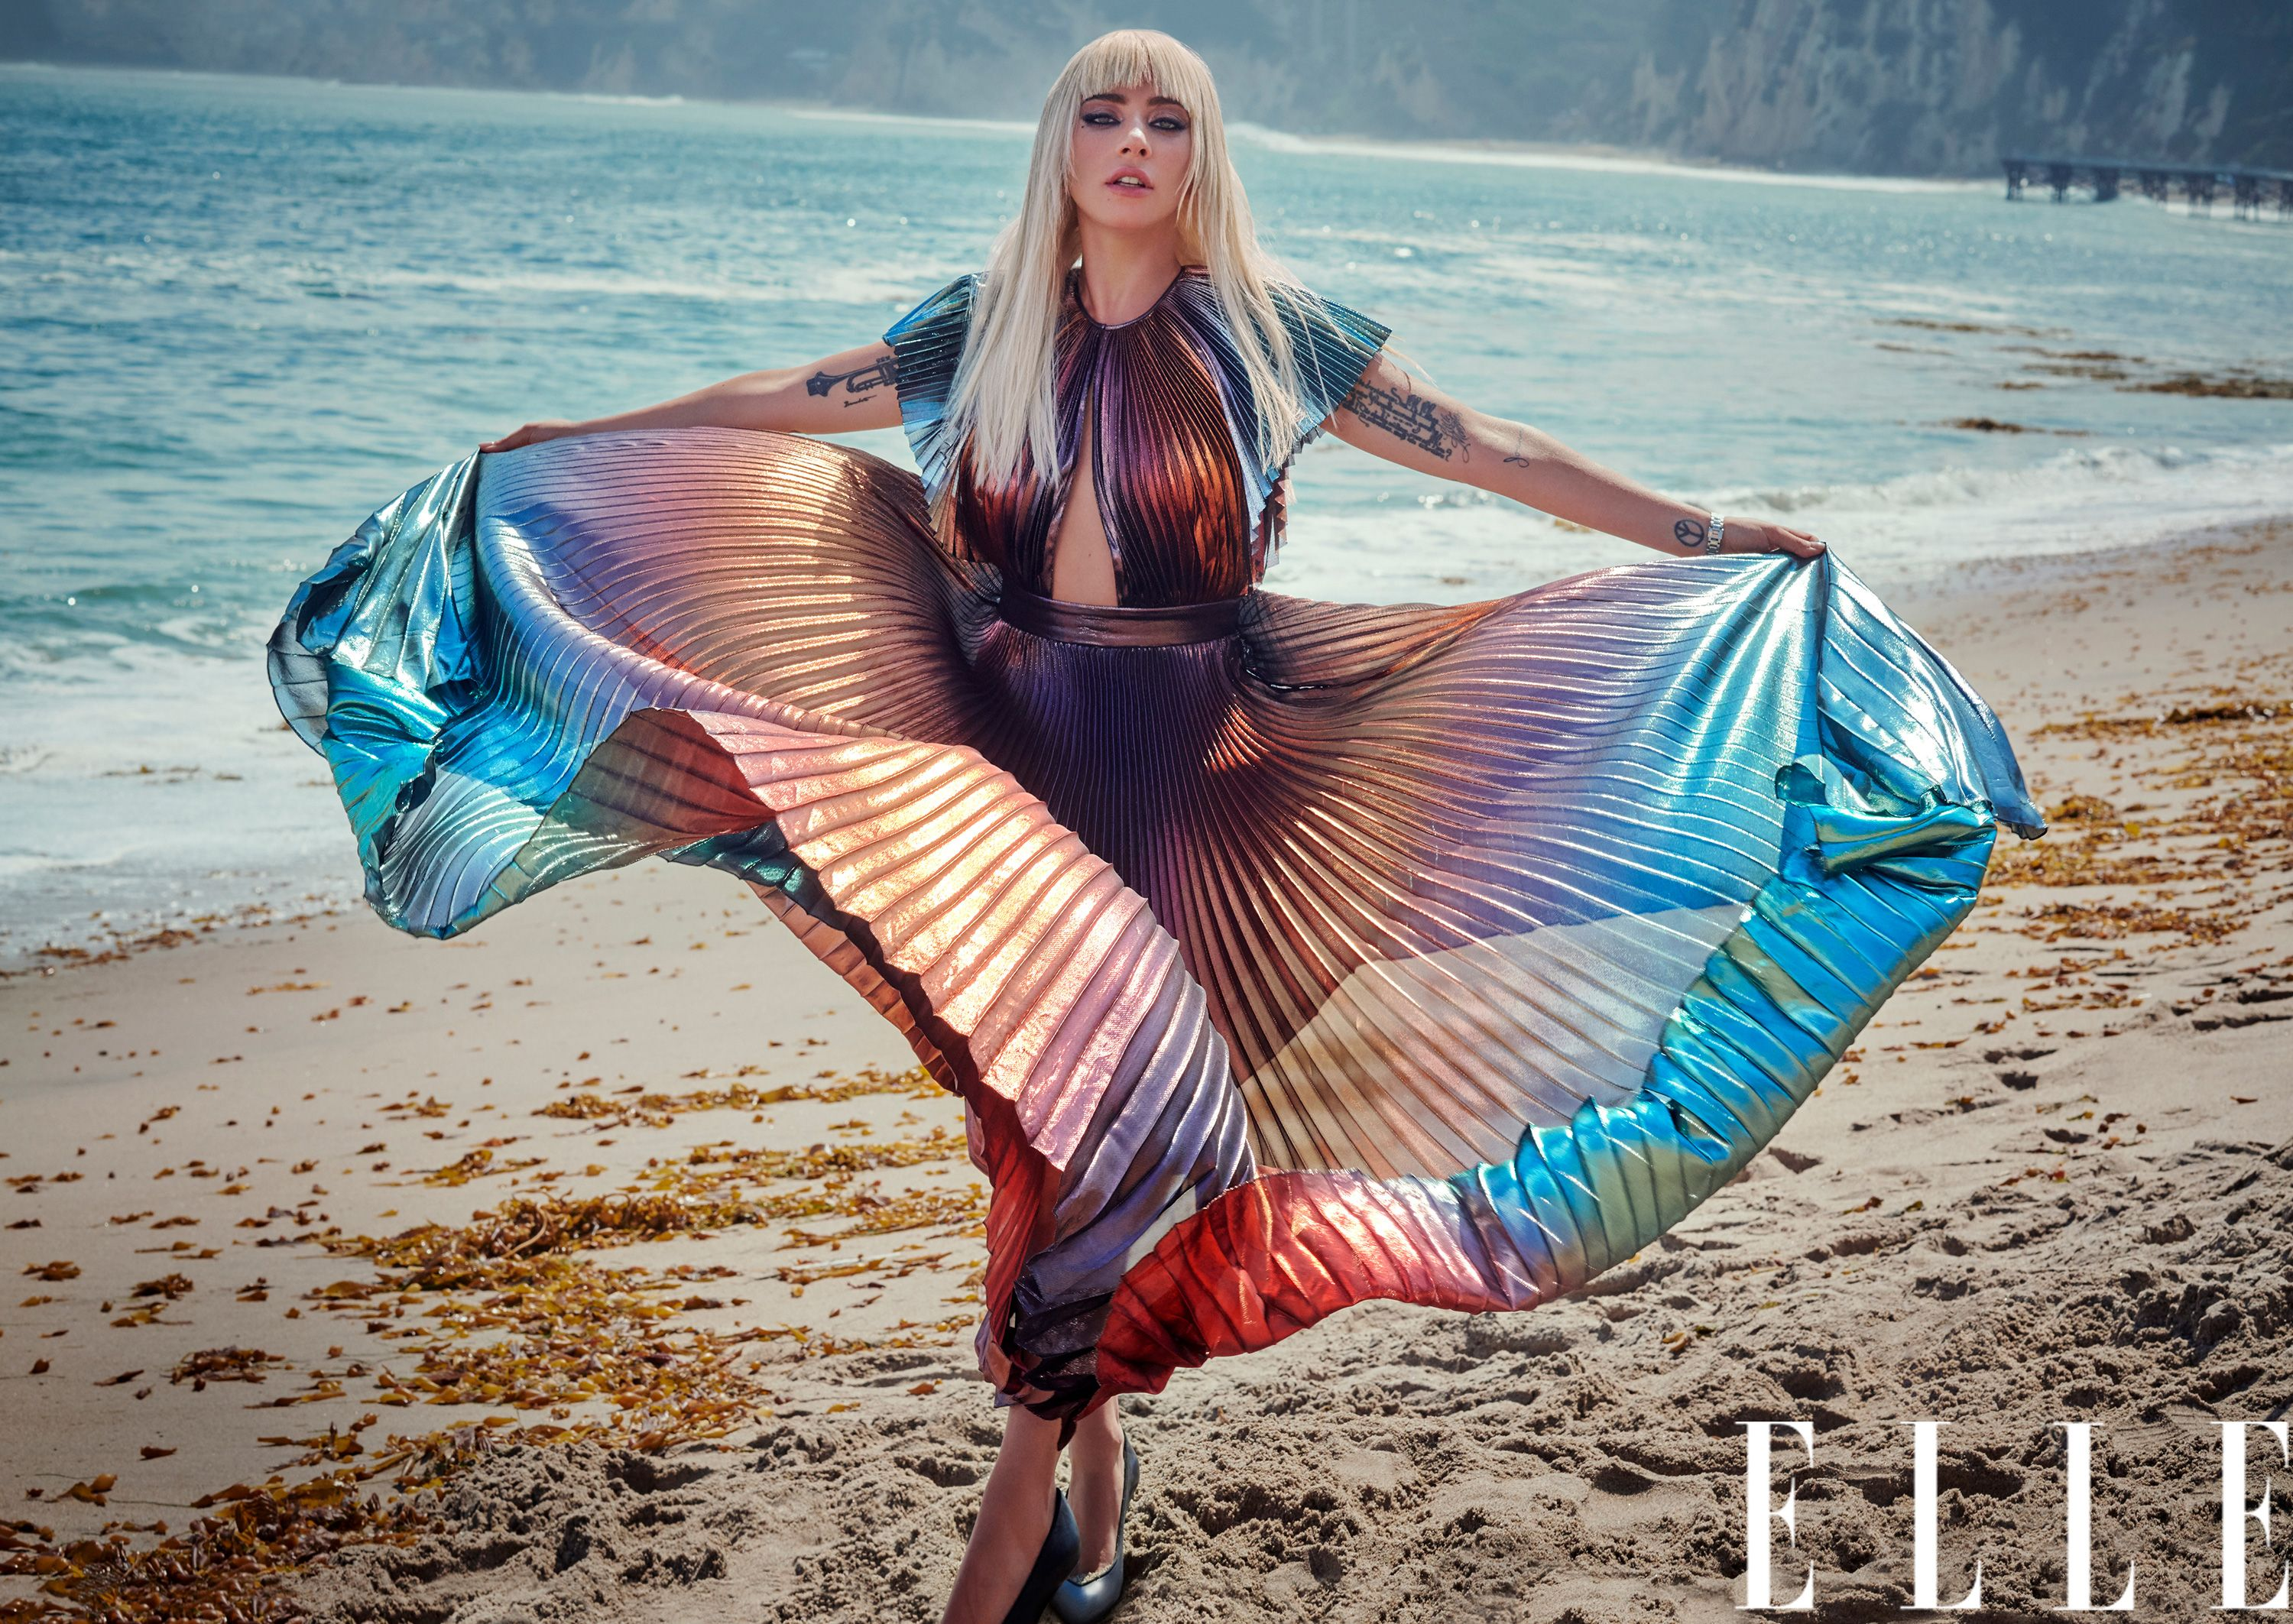 960ccf21b5e Lady Gaga A Star Is Born Profile - ELLE 2018 November Cover